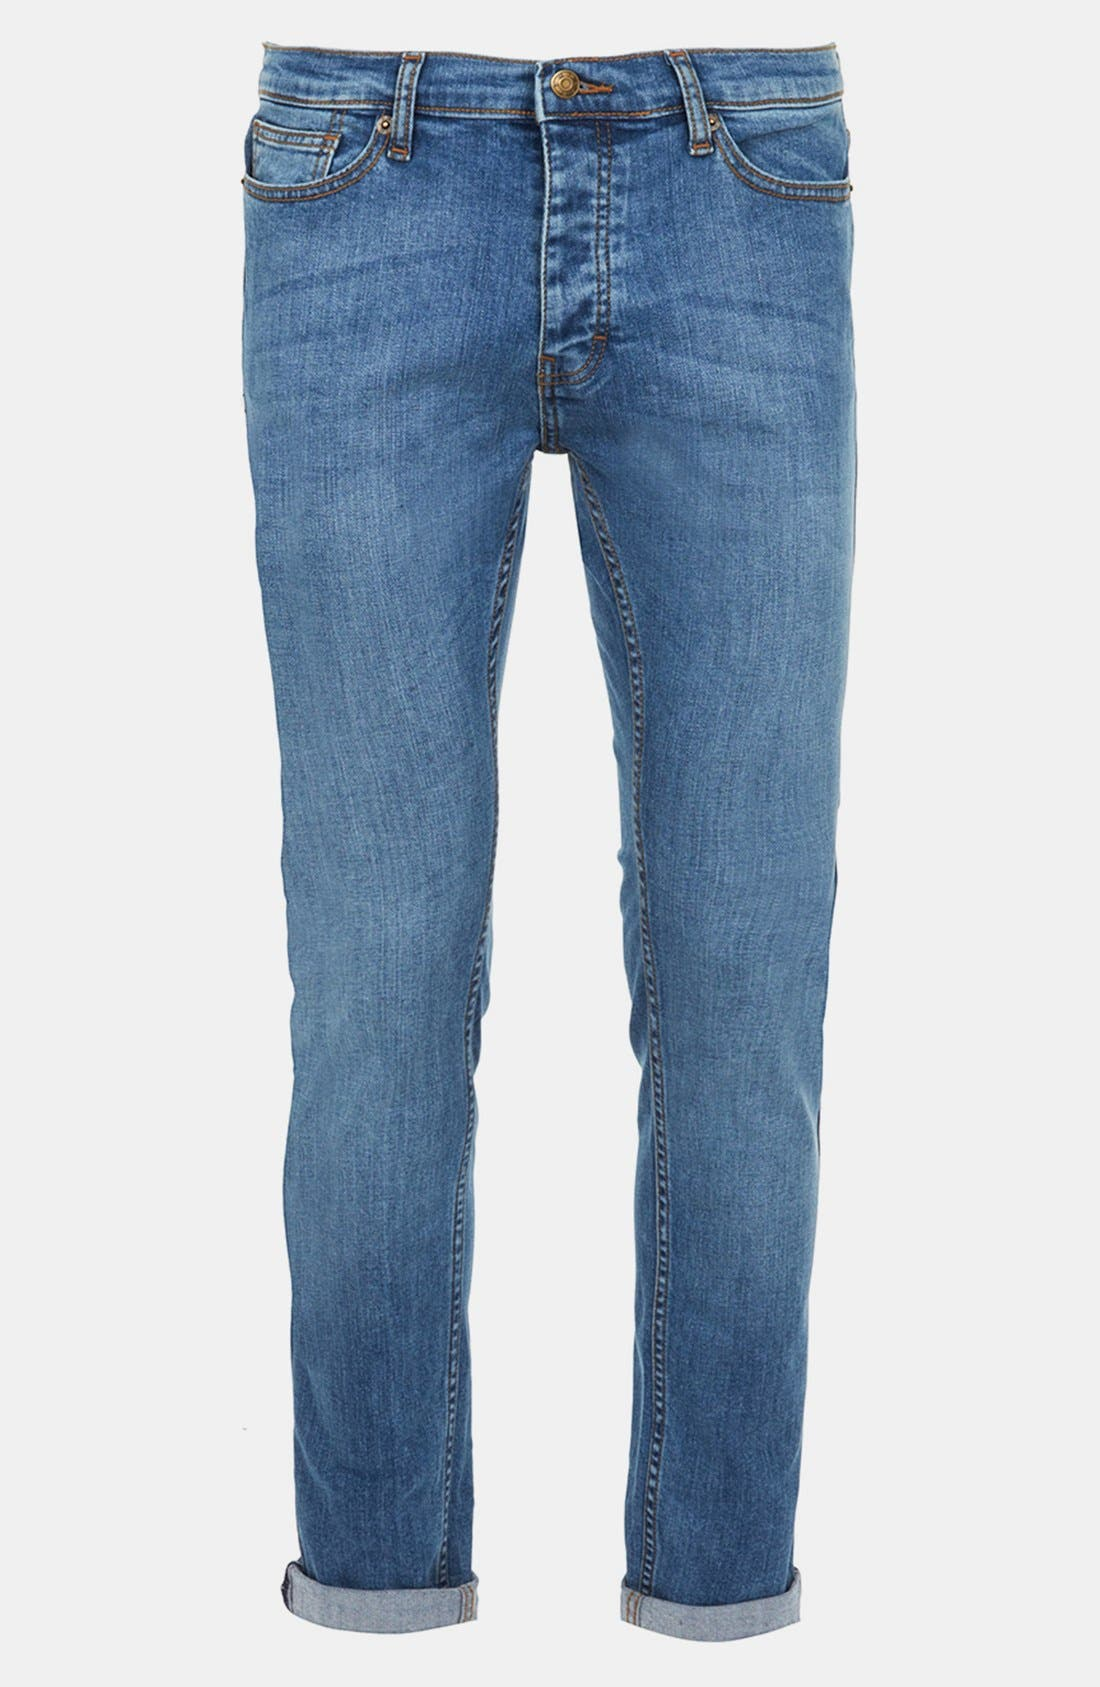 Alternate Image 1 Selected - Topman Skinny Fit Stretch Jeans